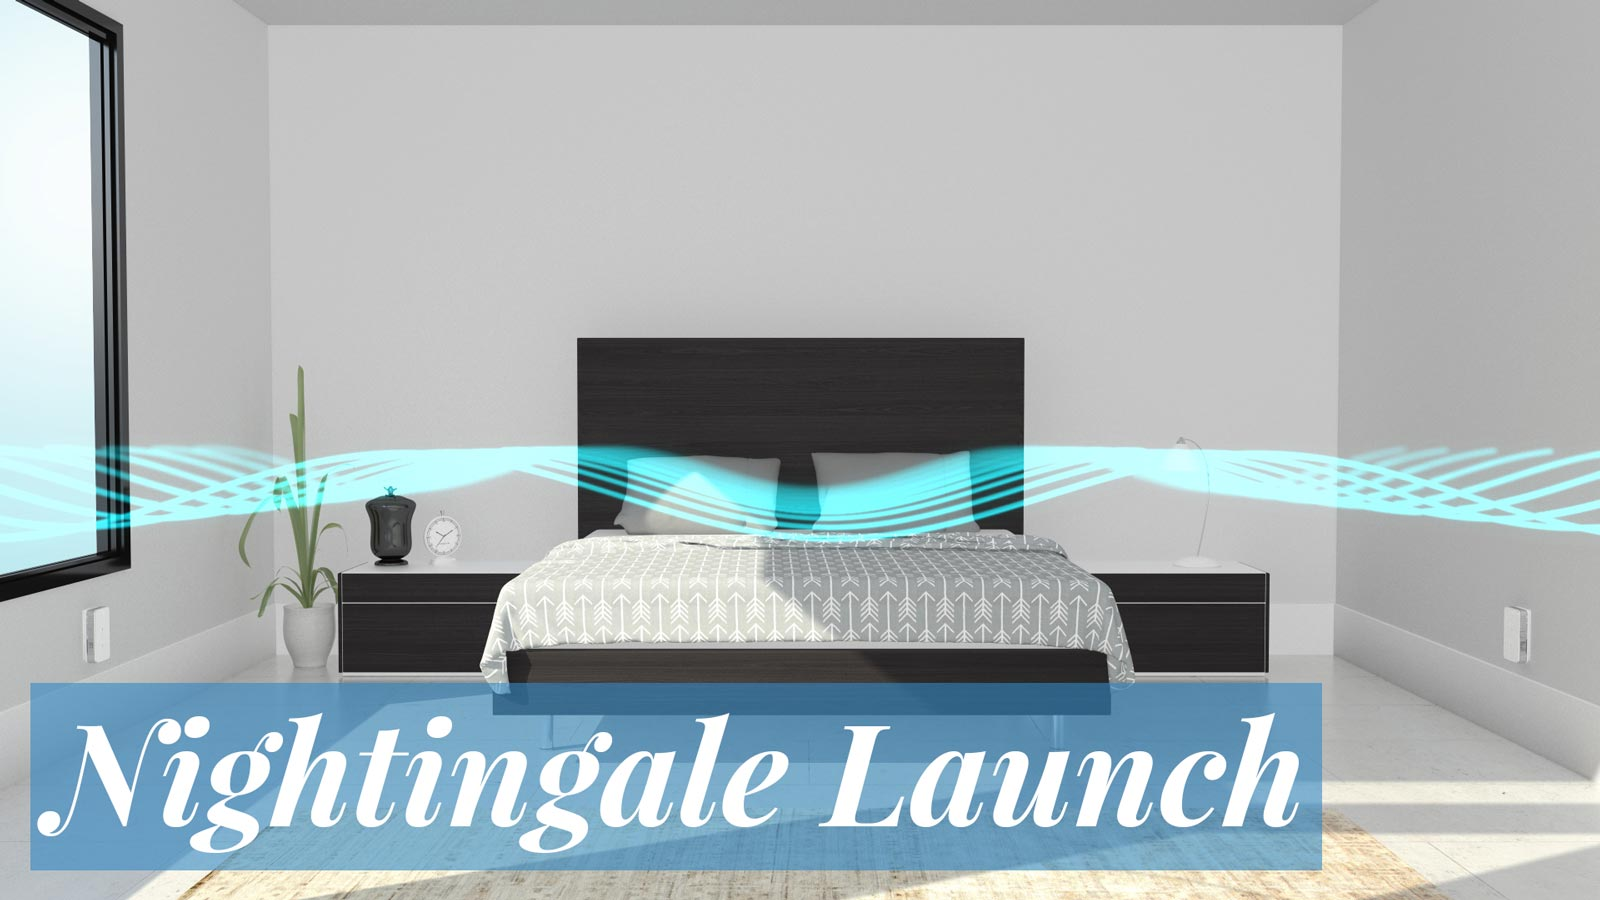 Cambridge Sound Management Nightingale product launch trade show graphics